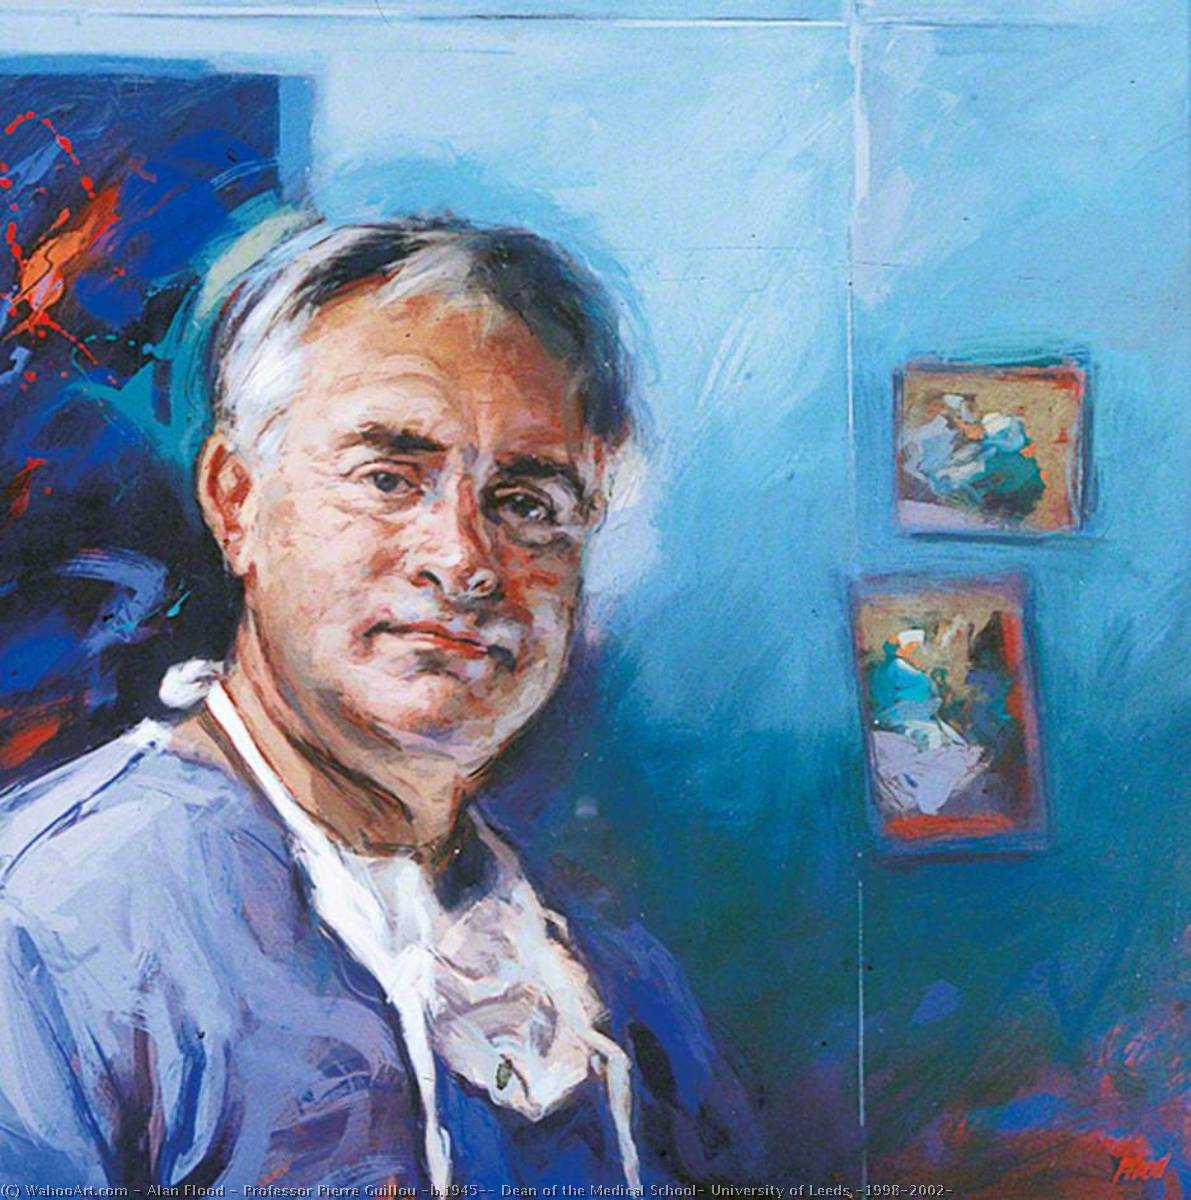 Professor Pierre Guillou (b.1945), Dean of the Medical School, University of Leeds (1998–2002), Oil On Canvas by Alan Flood